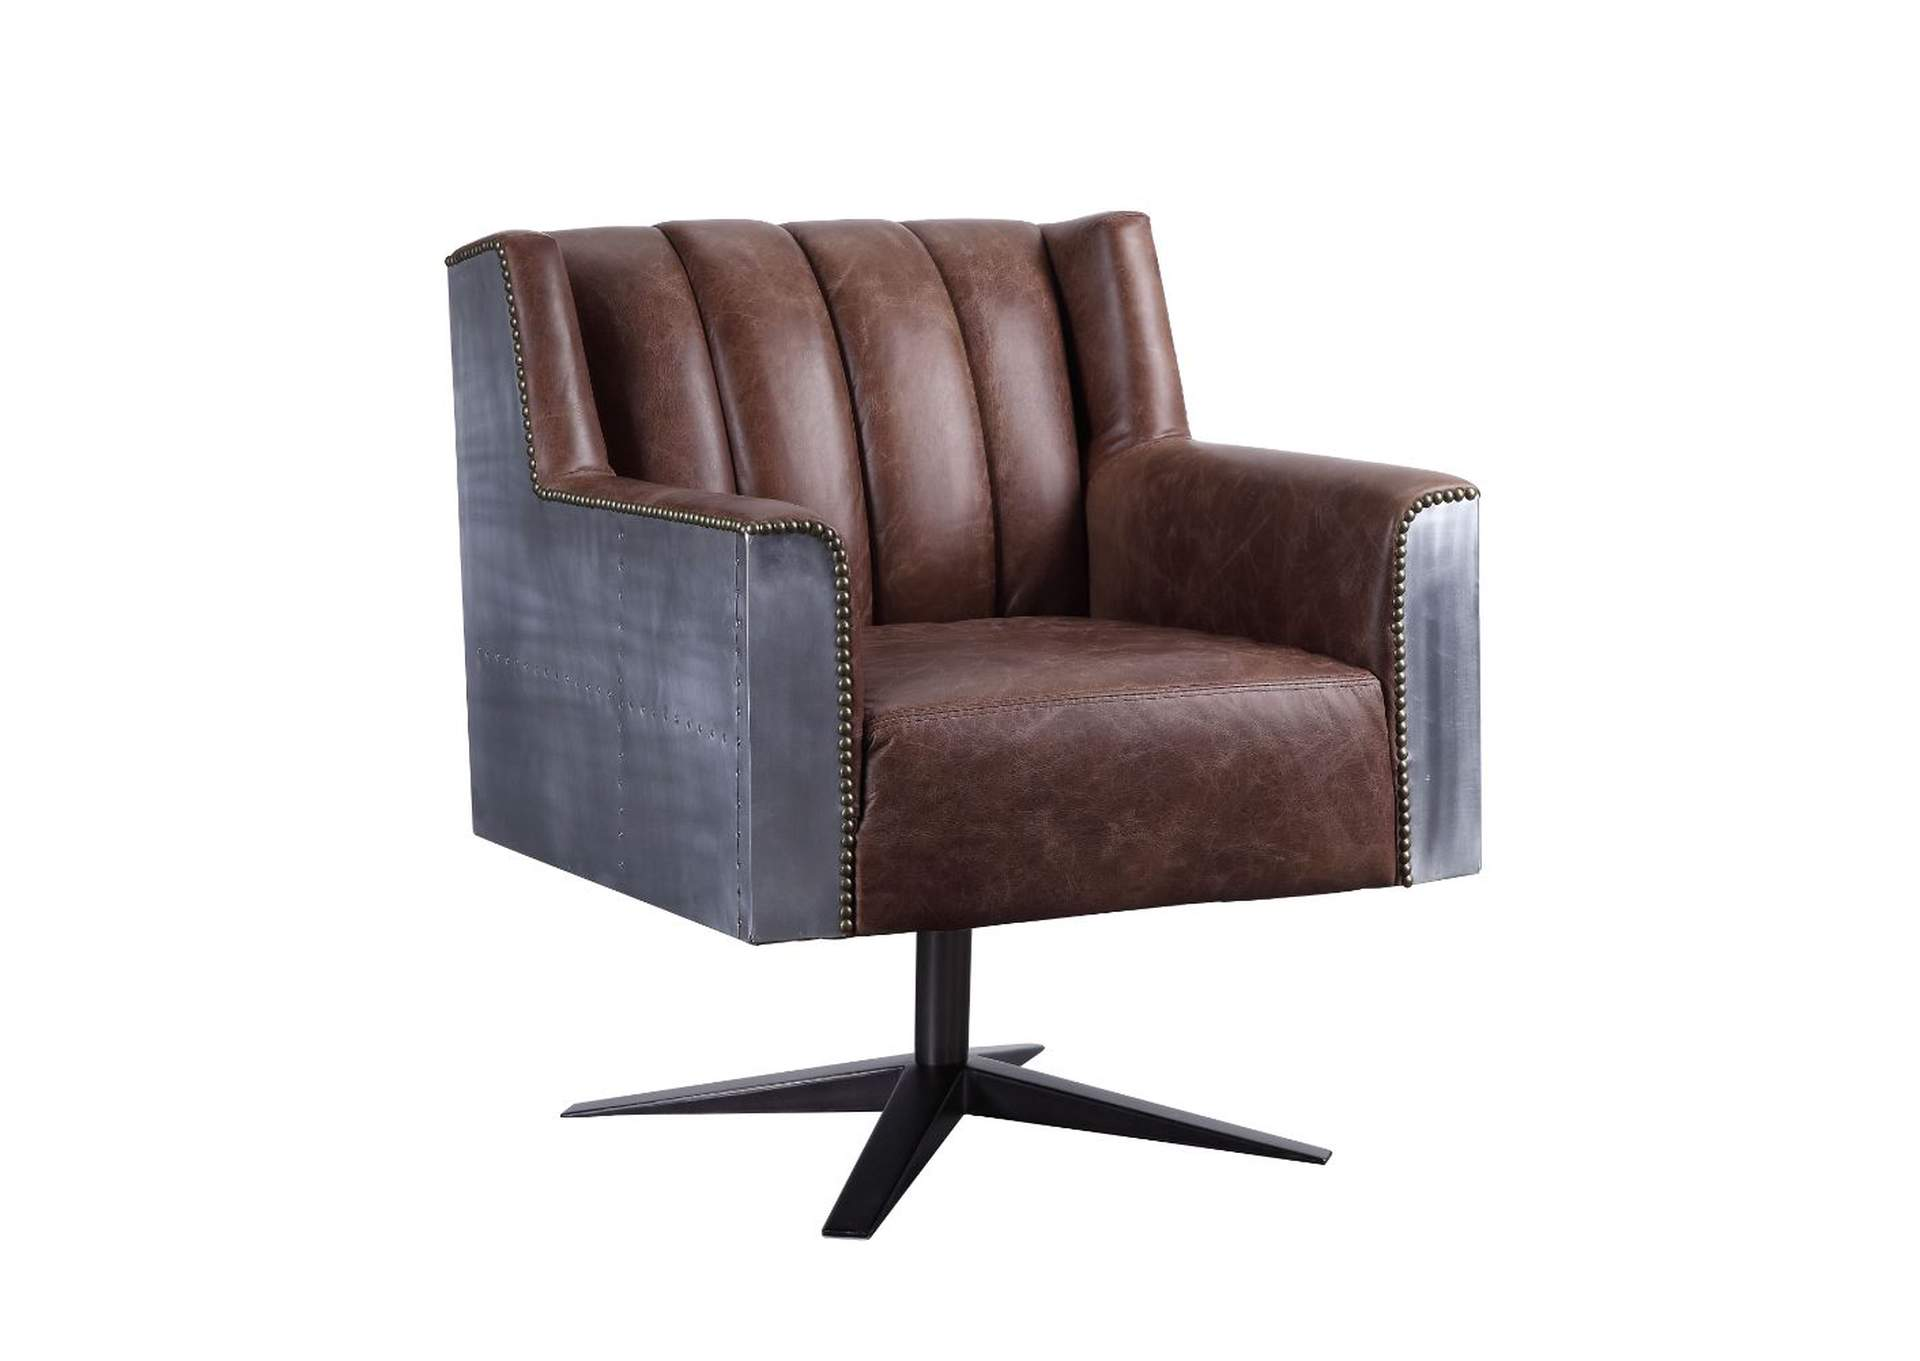 Brancaster Retro Brown Top Grain Leather & Aluminum Executive Office Chair,Acme